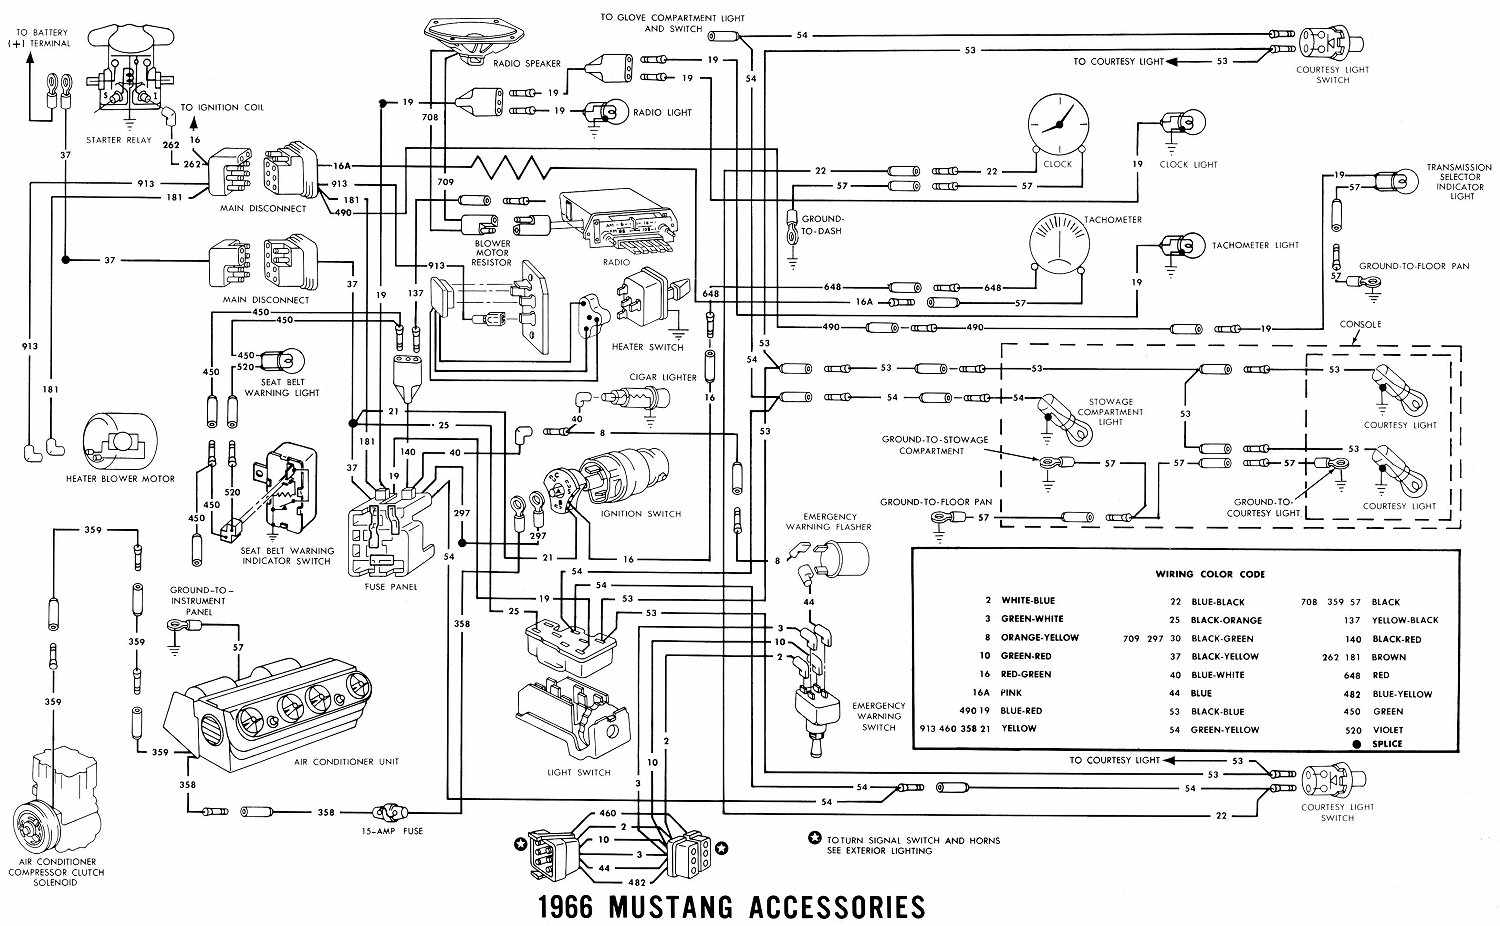 Accessories Electrical Wiring Diagram Of Ford Mustang on 2007 Ford Escape Radio Wiring Diagram